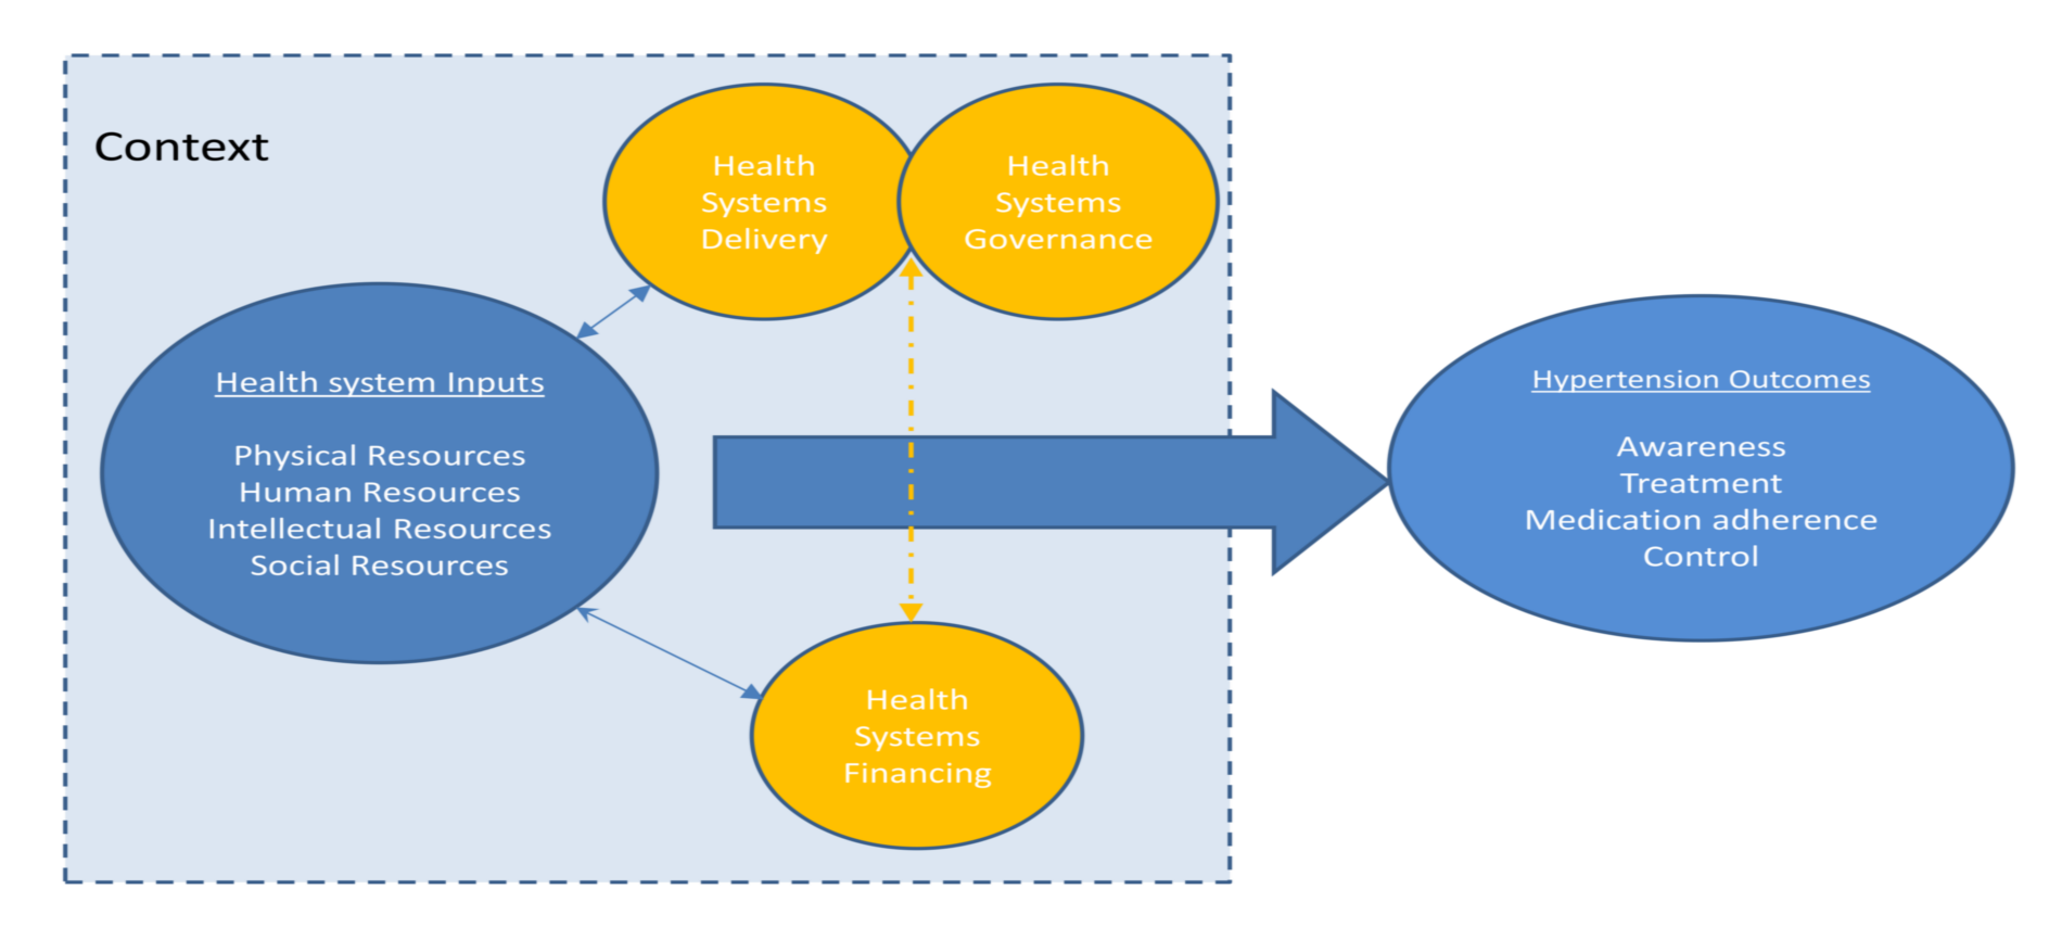 Schematic diagram of health systems conceptual framework.